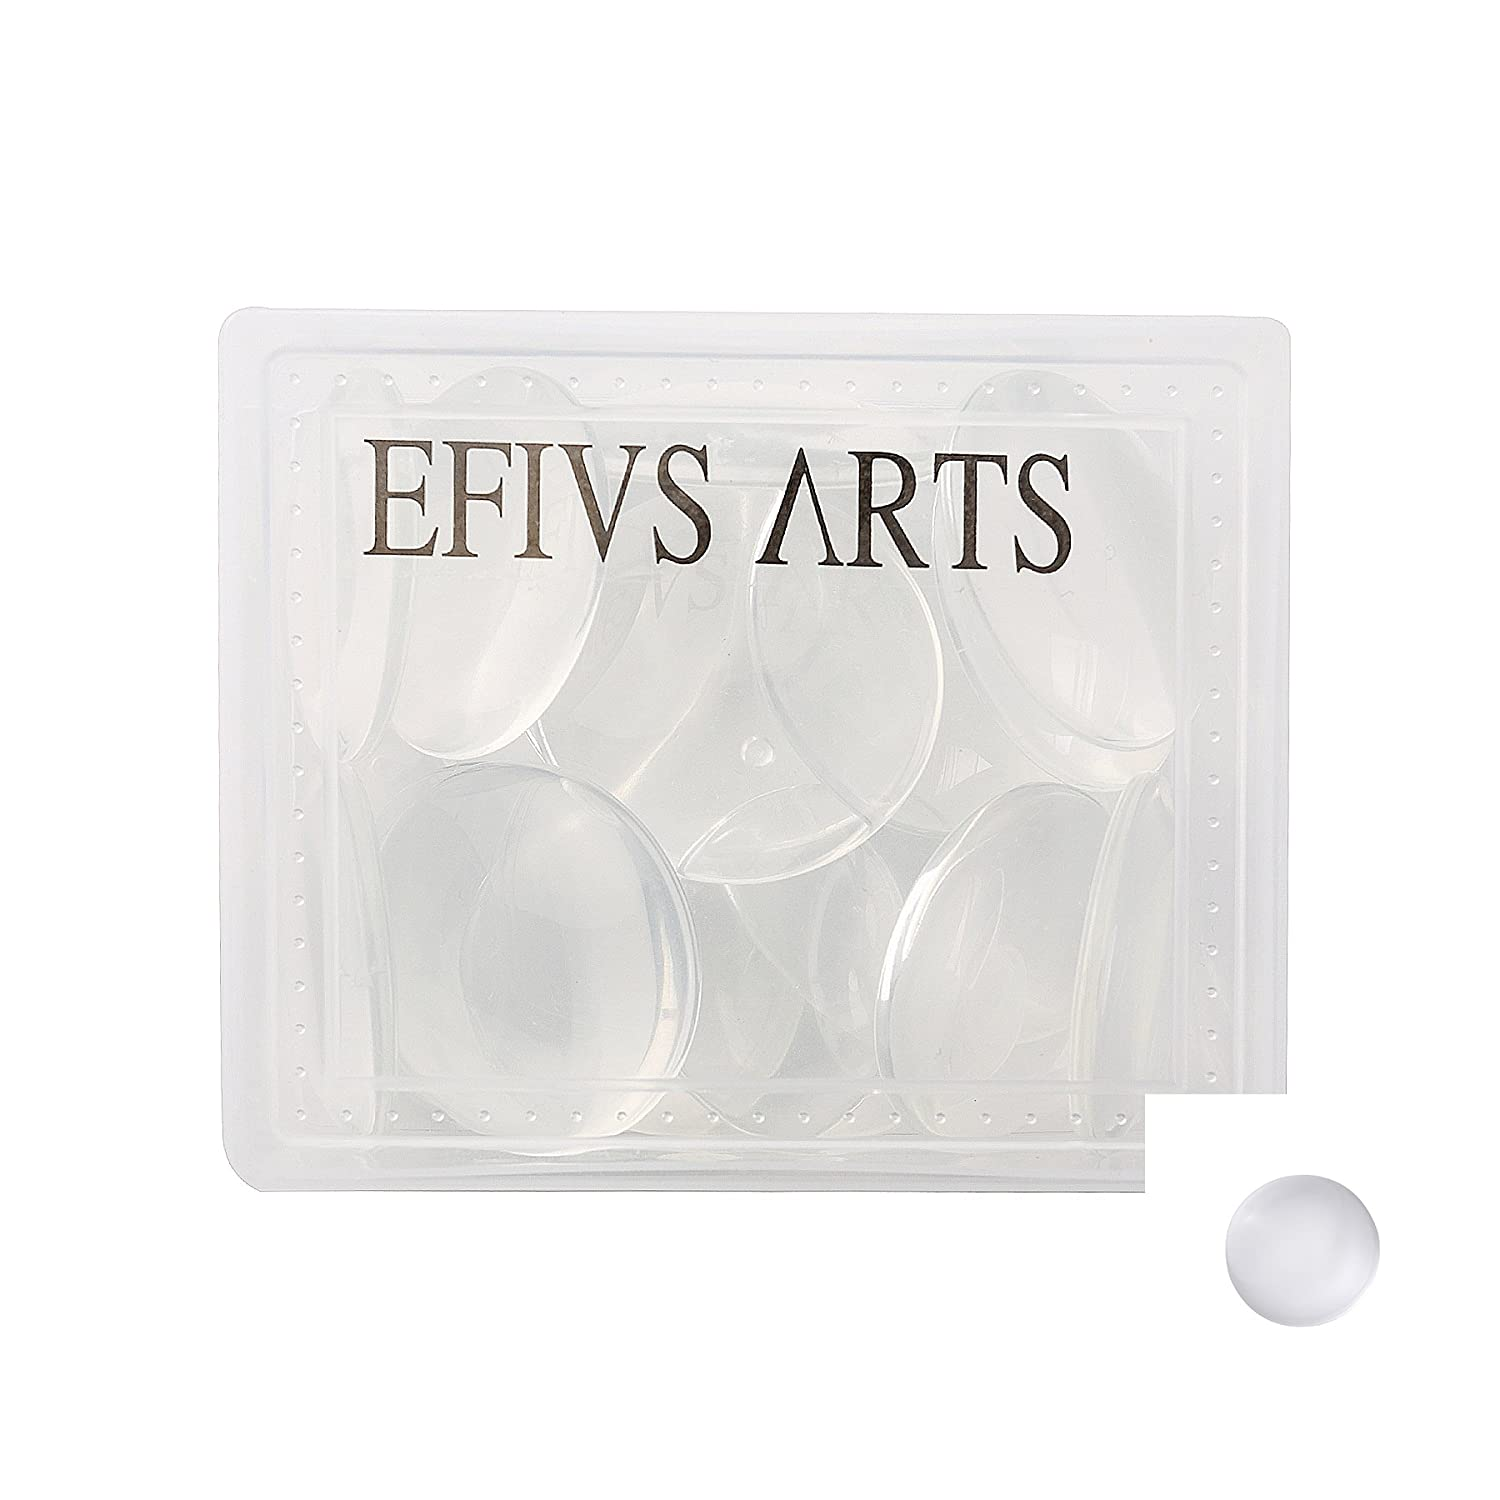 Efivs Arts 20 pcs Clear Glass Dome Tile Cabochon Half Round Flat Clear 1.57 inch (40mm) Non-calibrated Round For Photo Pendant Craft Jewelry Making 4336824018